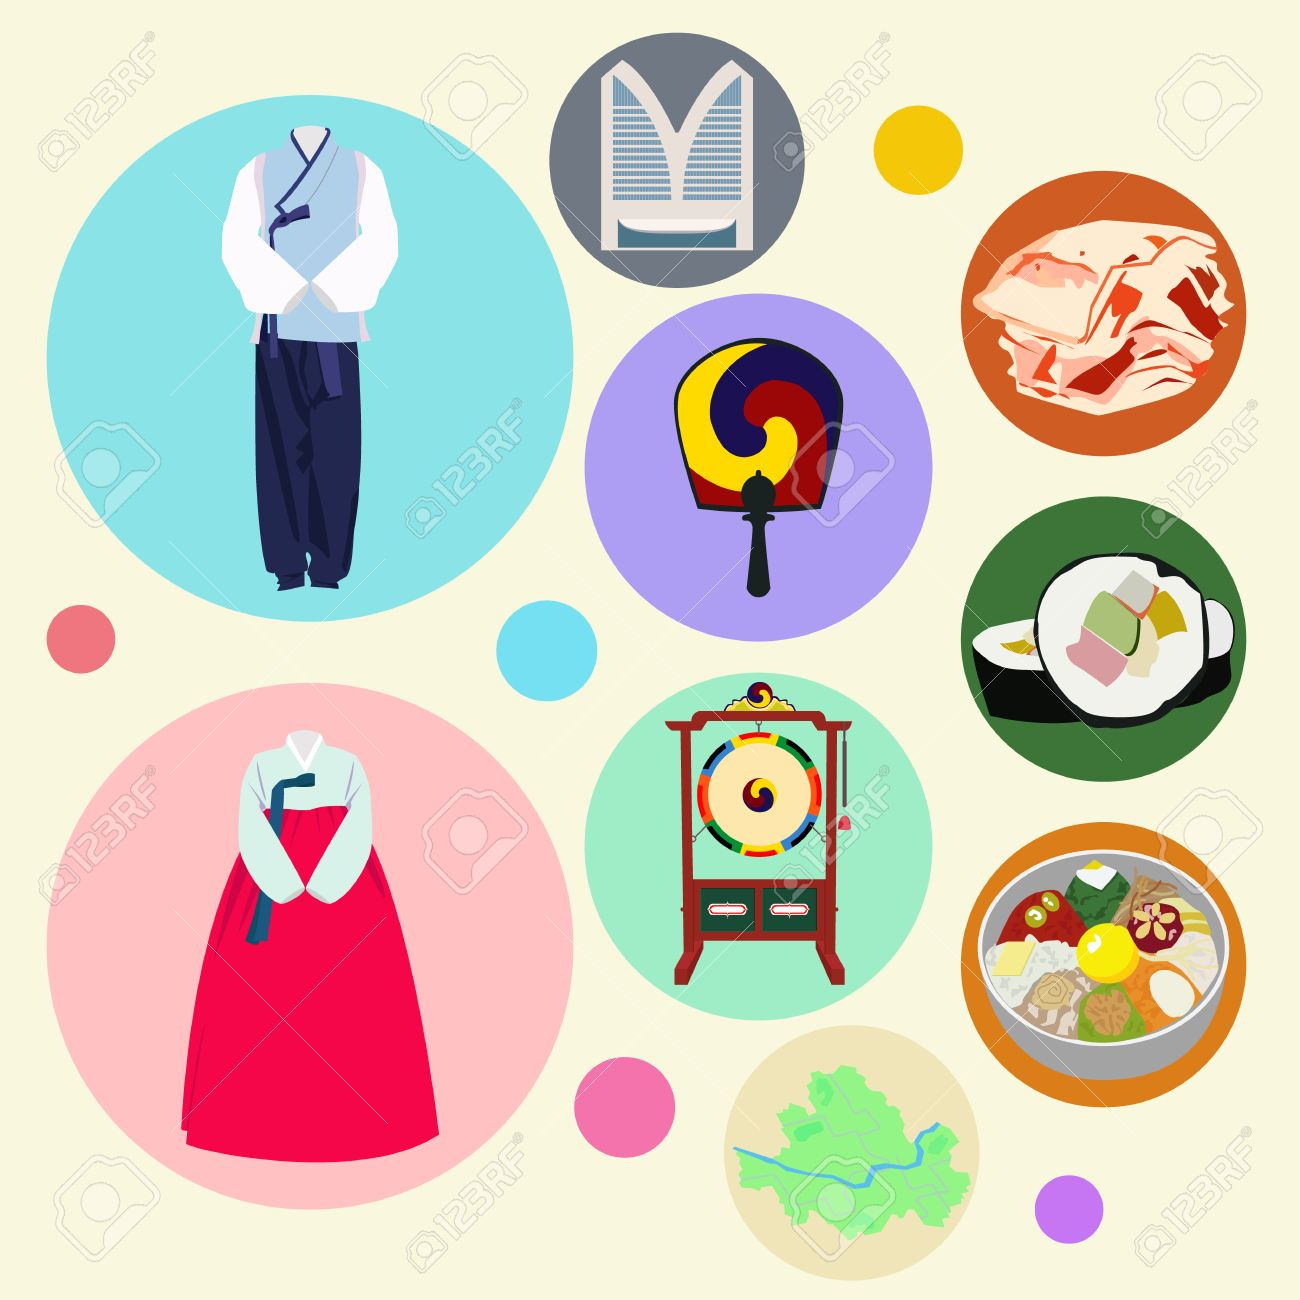 korean traditional elements vector set royalty free cliparts vectors and stock illustration image 37395891 korean traditional elements vector set